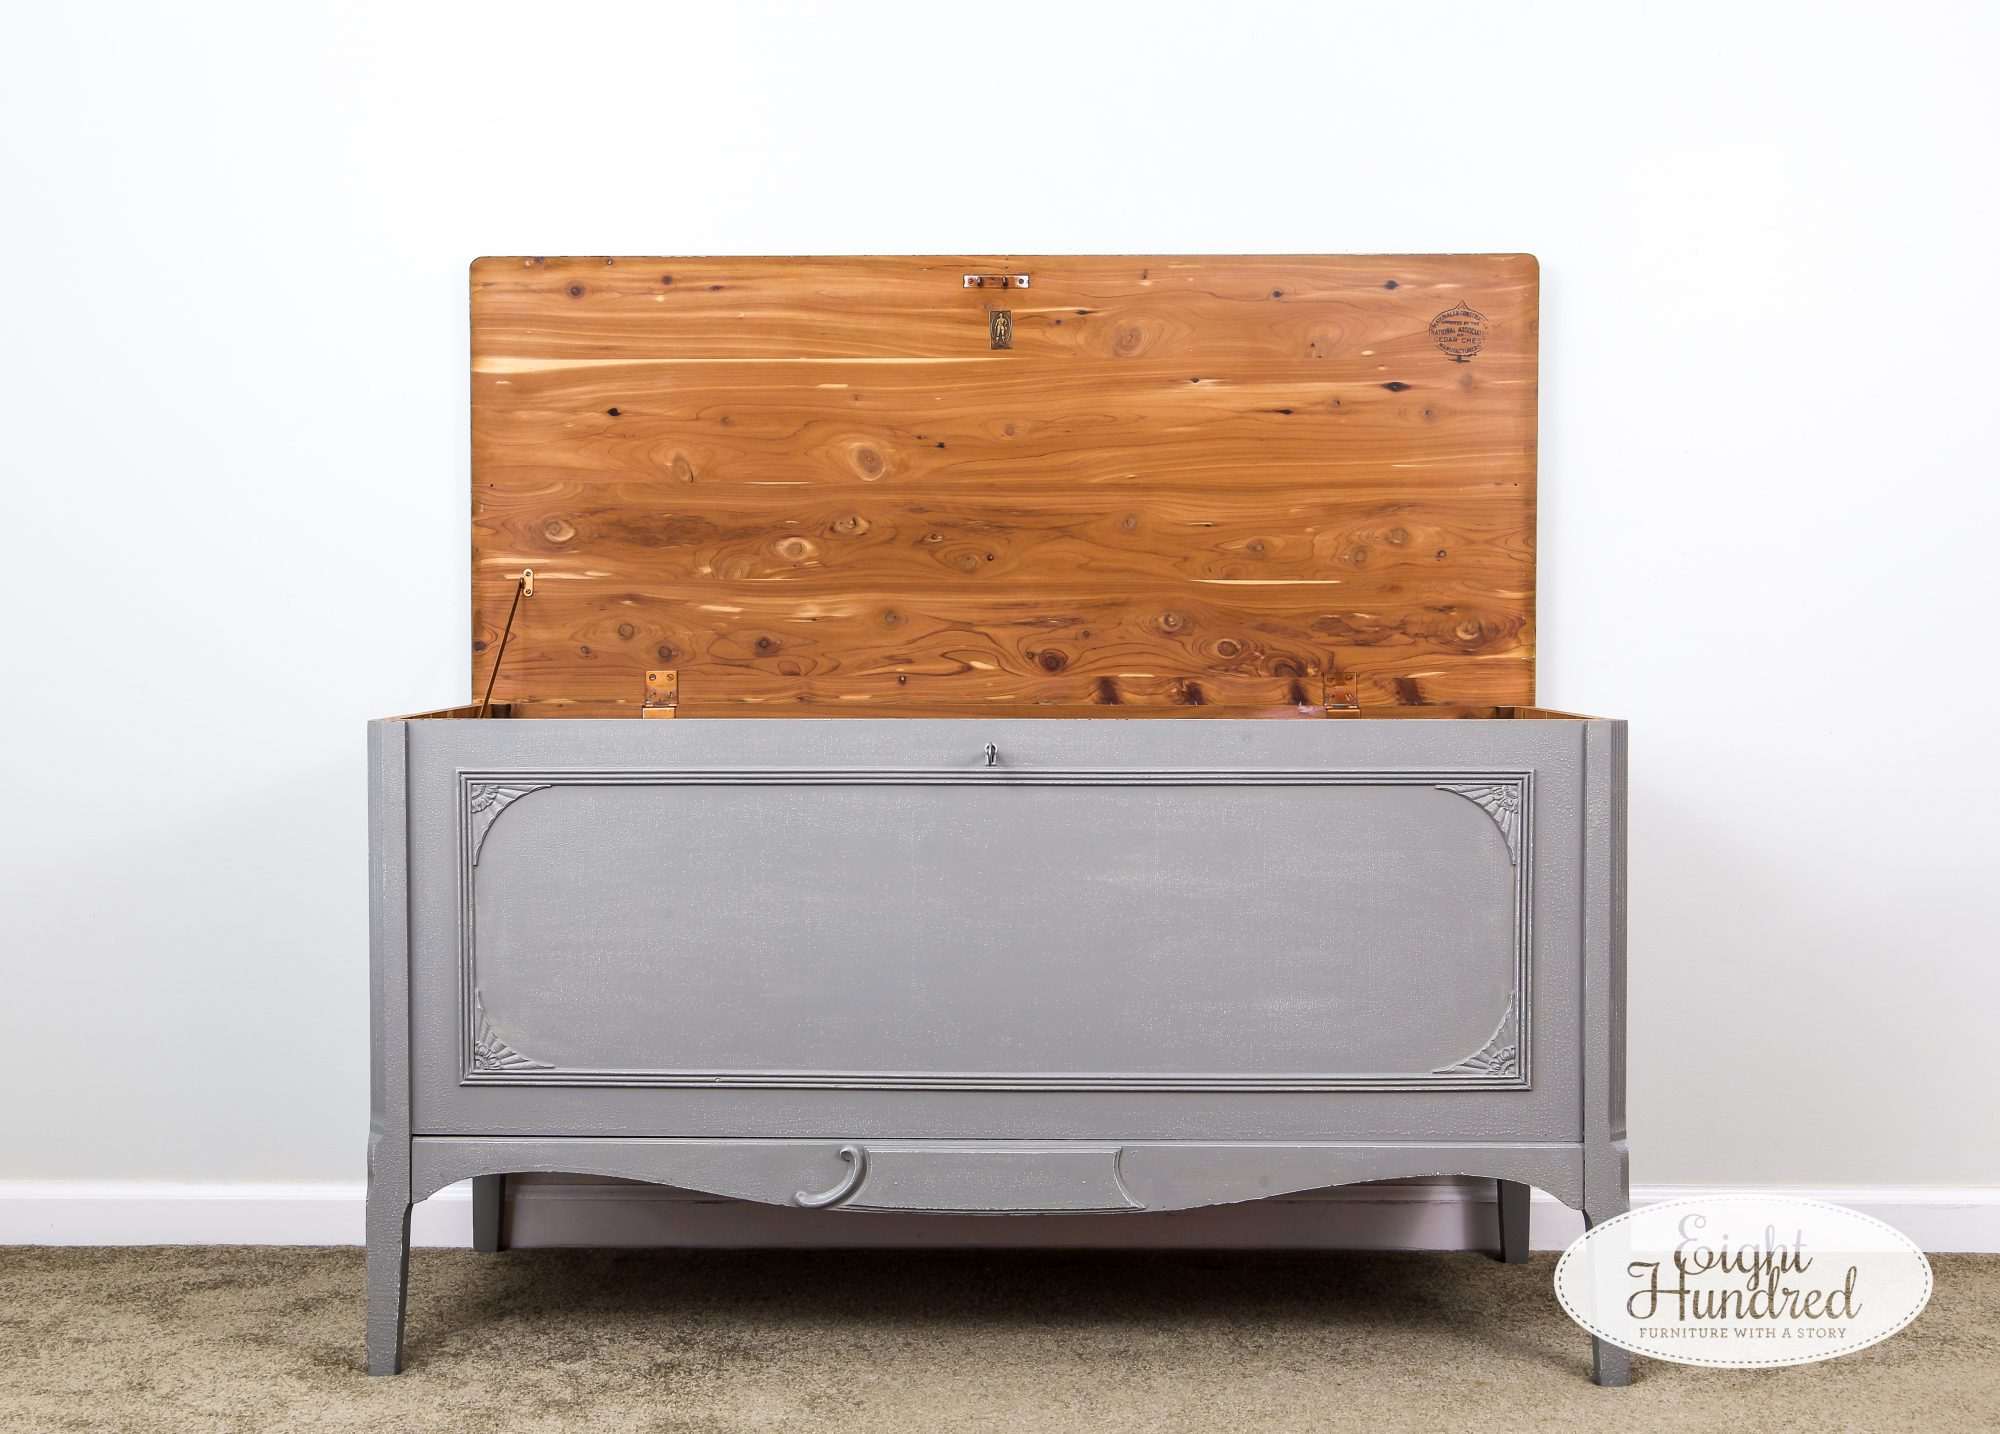 Vintage cedar chest painted in General Finishes Perfect Gray Milk Paint with the lid open